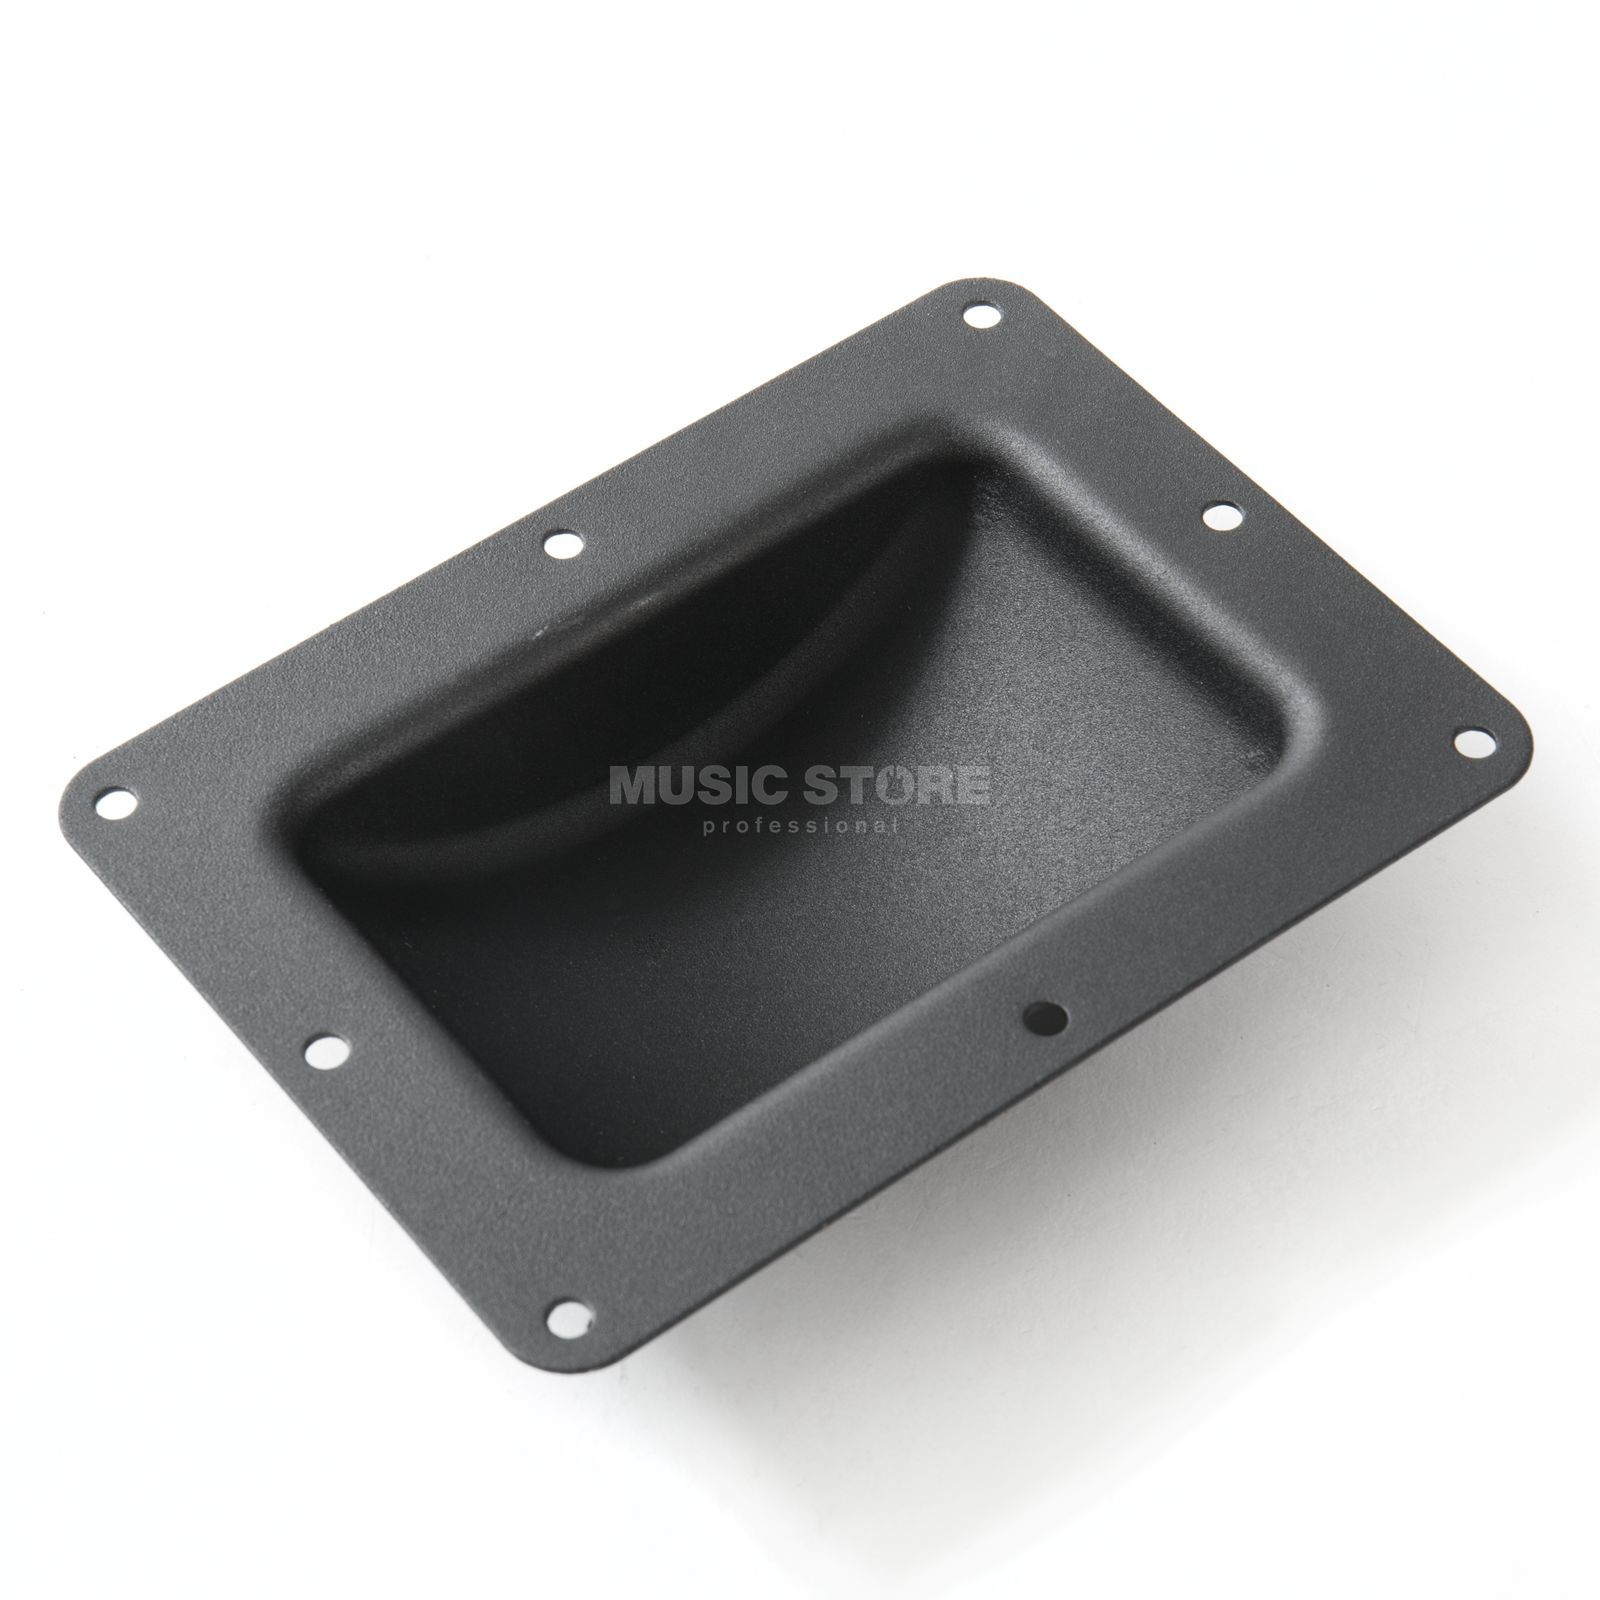 MUSIC STORE Castor Dish Medium Product Image